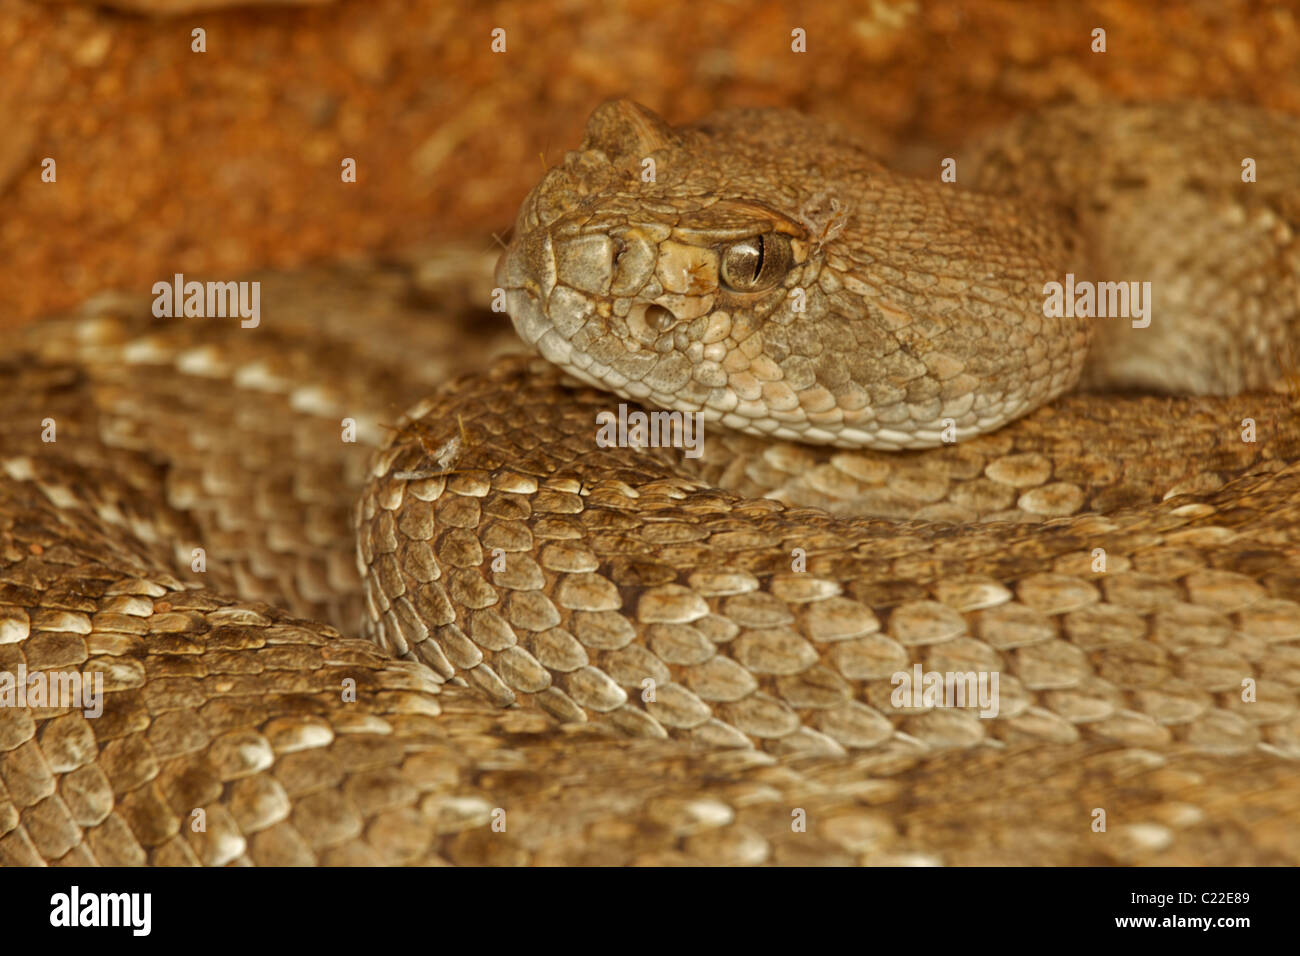 Western Diamond-backed Rattlesnake(s) (Crotalus atrox) -Arizona – USA - Sonoran Desert - Emerging from winter hibernation Stock Photo